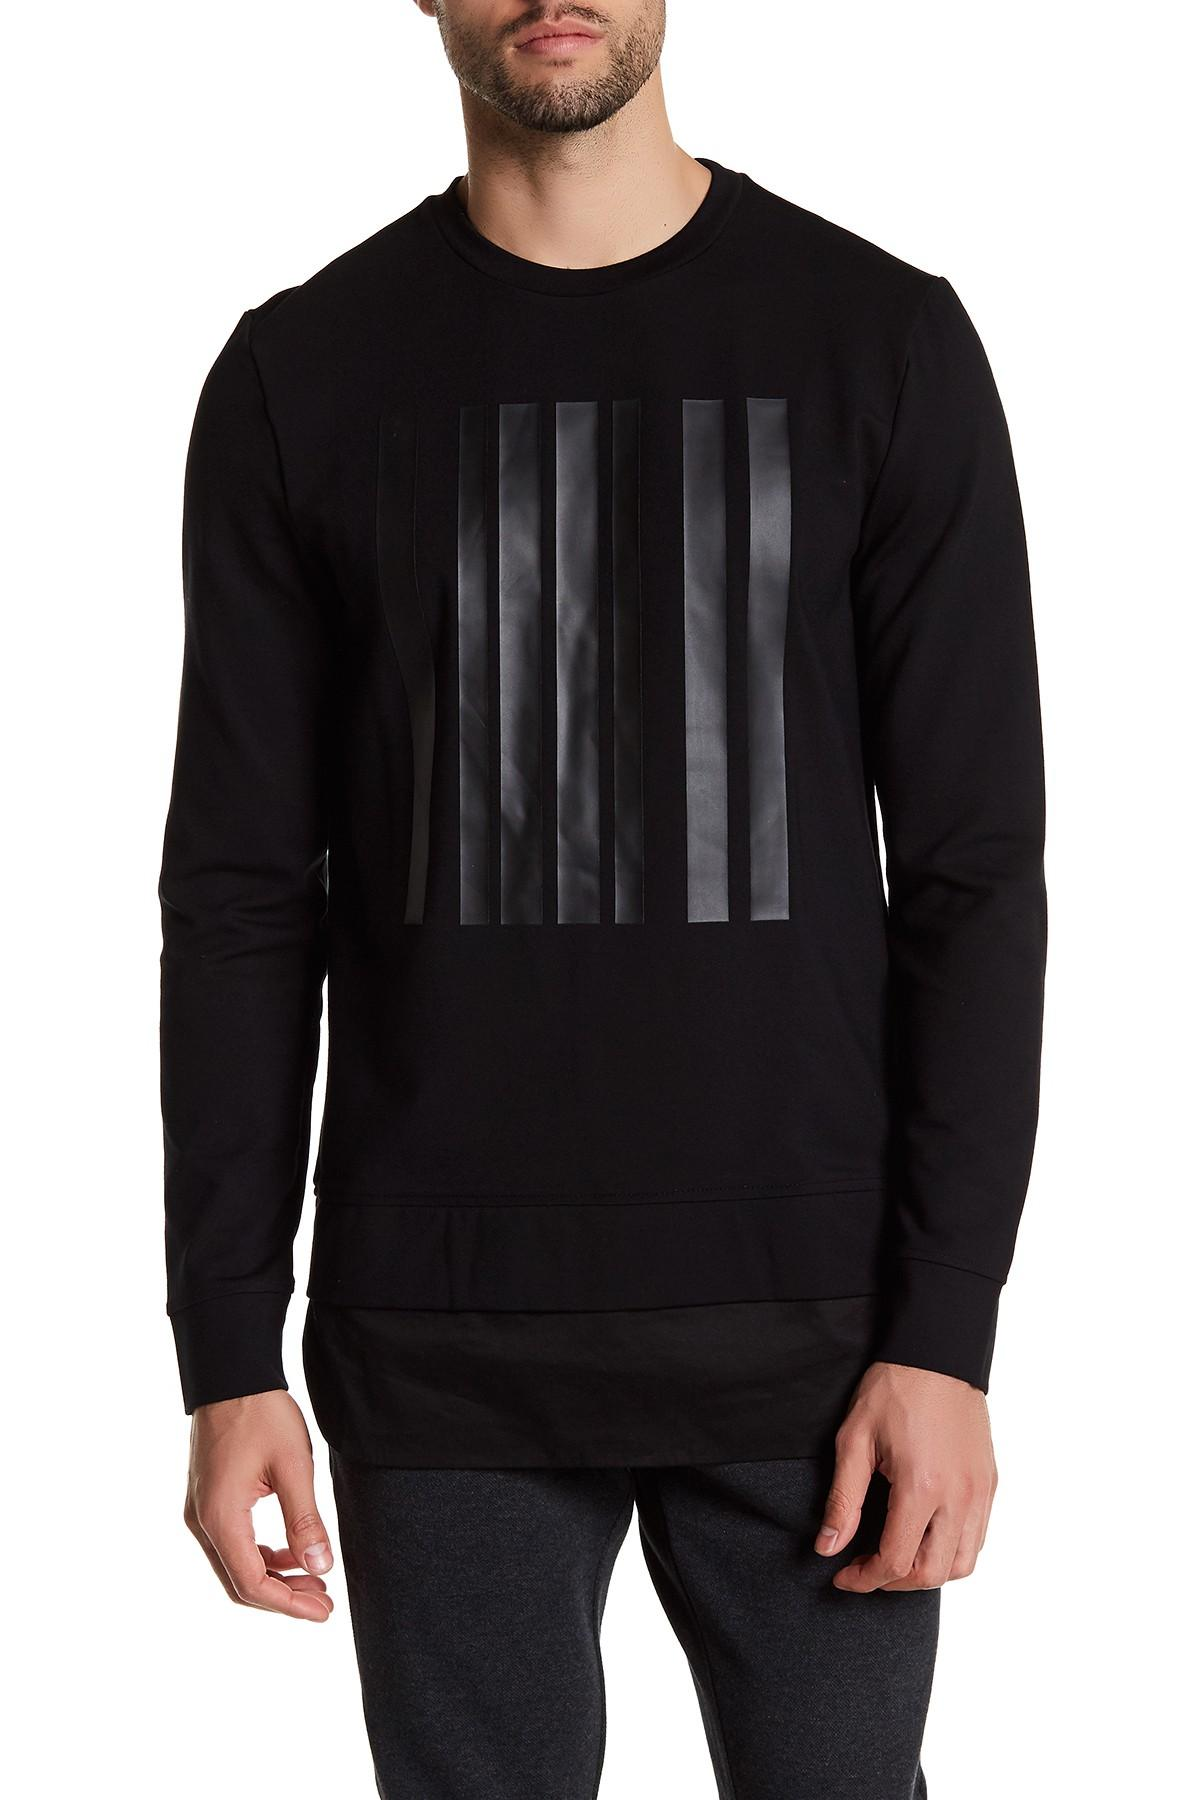 Free shipping BOTH ways on Sweaters, Men, Crew Neck, from our vast selection of styles. Fast delivery, and 24/7/ real-person service with a smile. Click or call